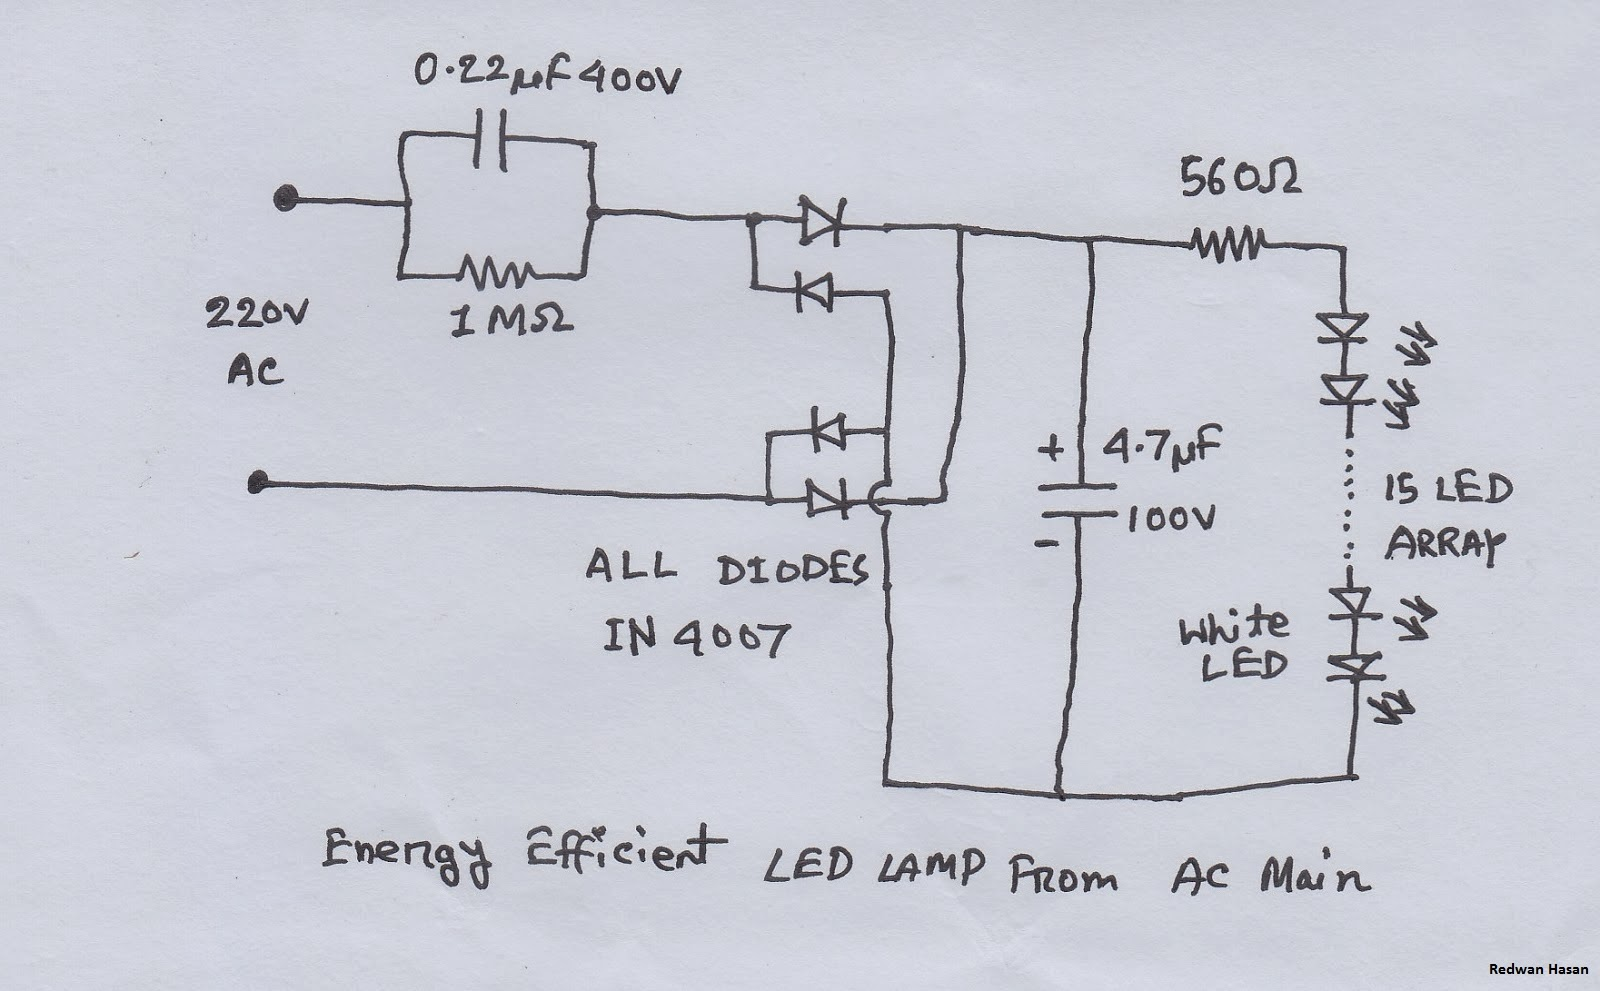 Led table lamp circuit diagram best inspiration for table lamp led based lamps so here is the diagram of a led based table lamp geotapseo Images